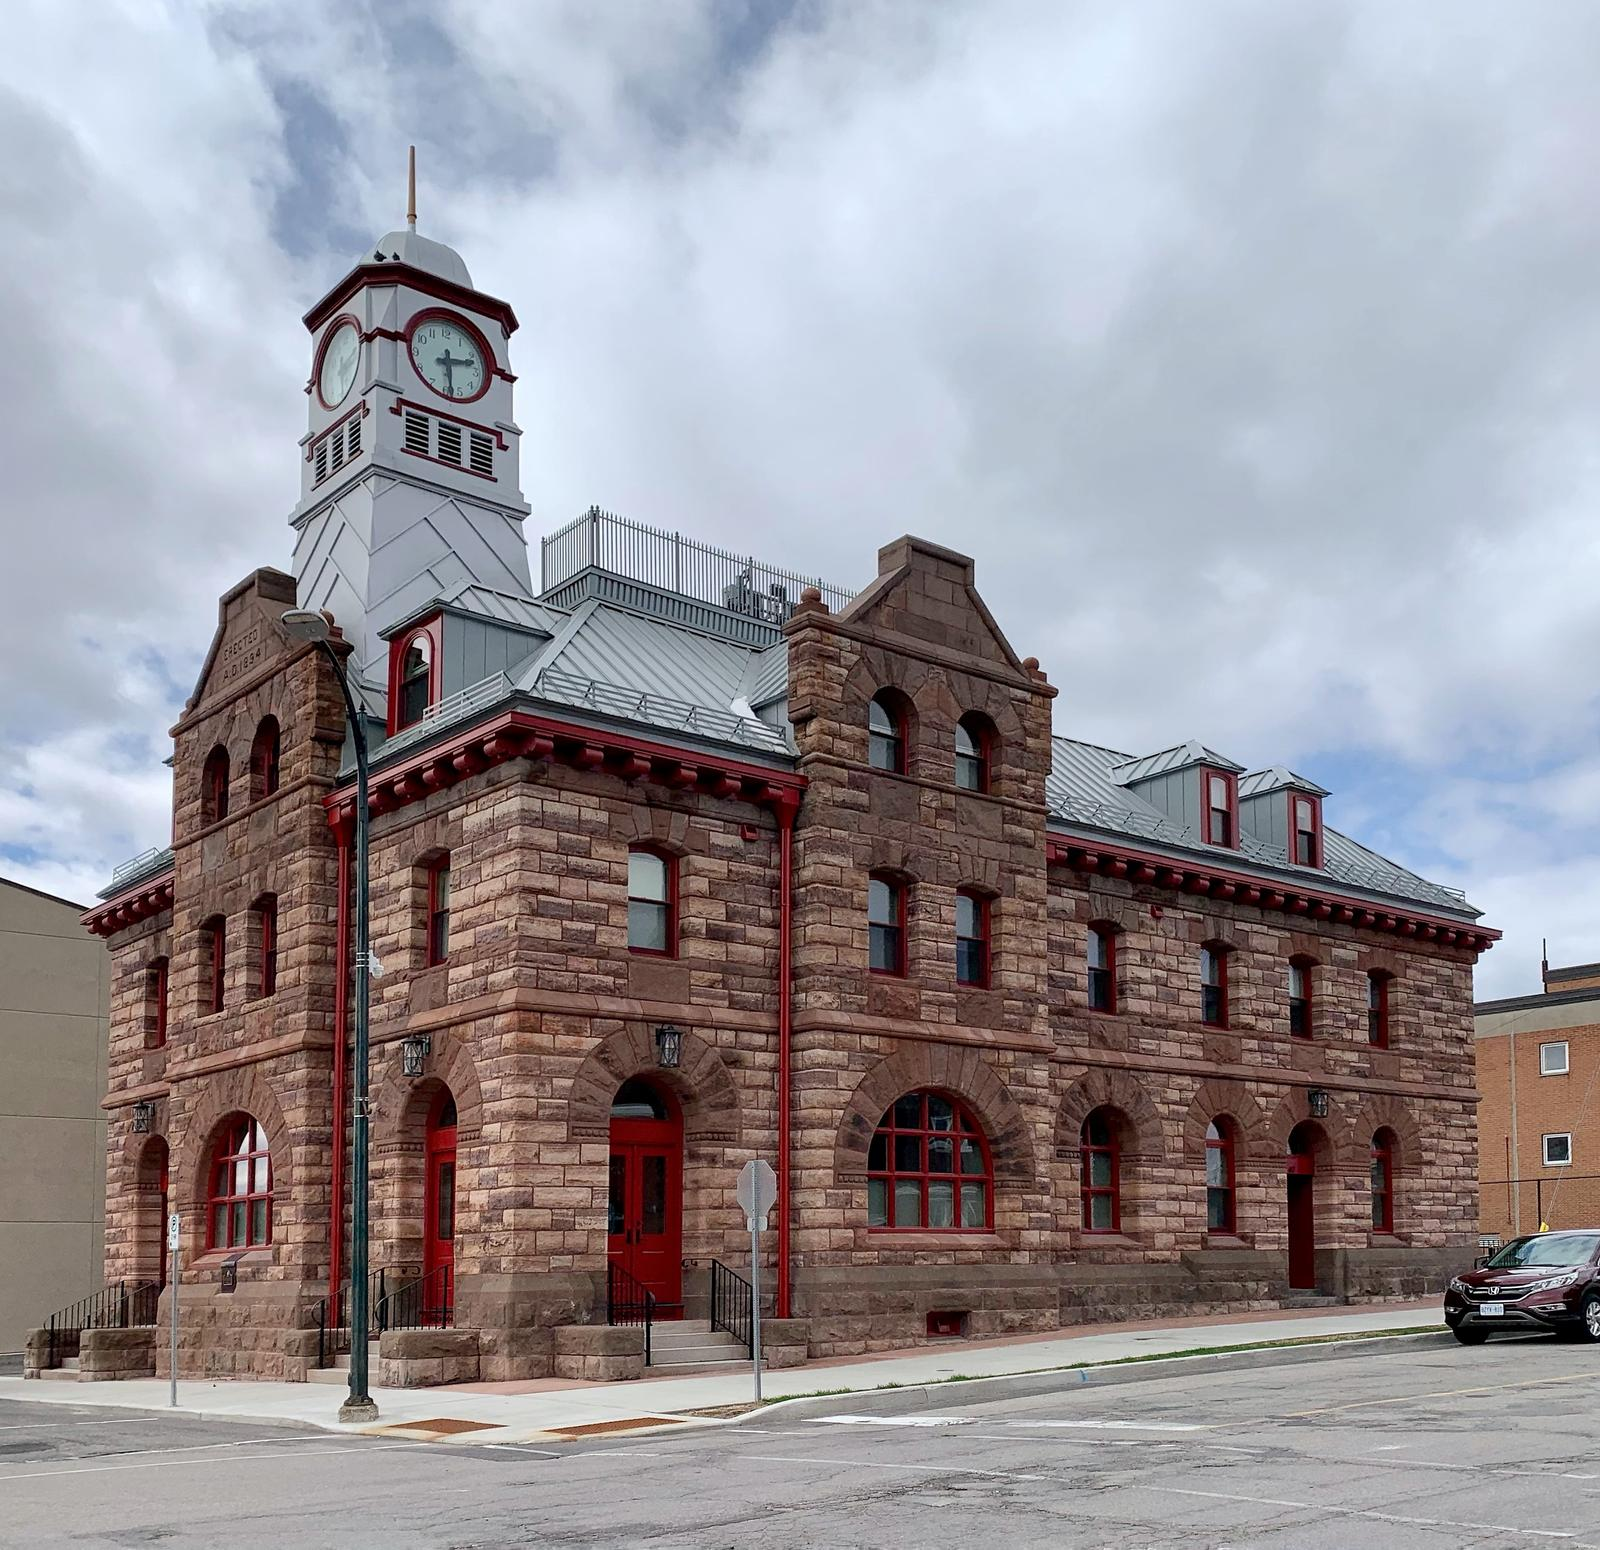 Post Office, 30 Russell Street East, Smiths Falls, April 2021